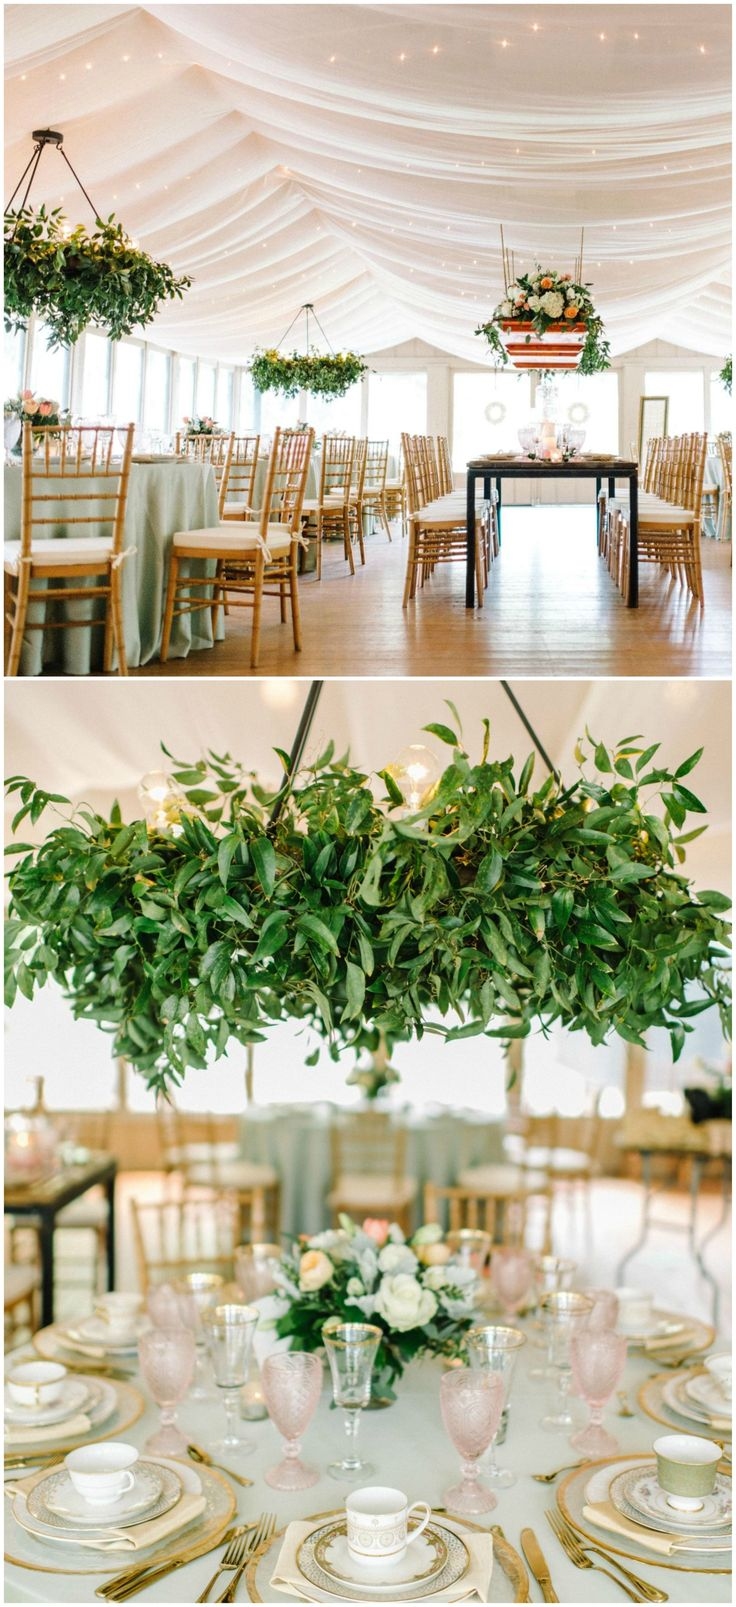 Hanging centerpiece, greenery, white draped fabric, twinkling ceiling lights, mismatched teacups, wedding reception ideas // Sean Money + Elizabeth Fay